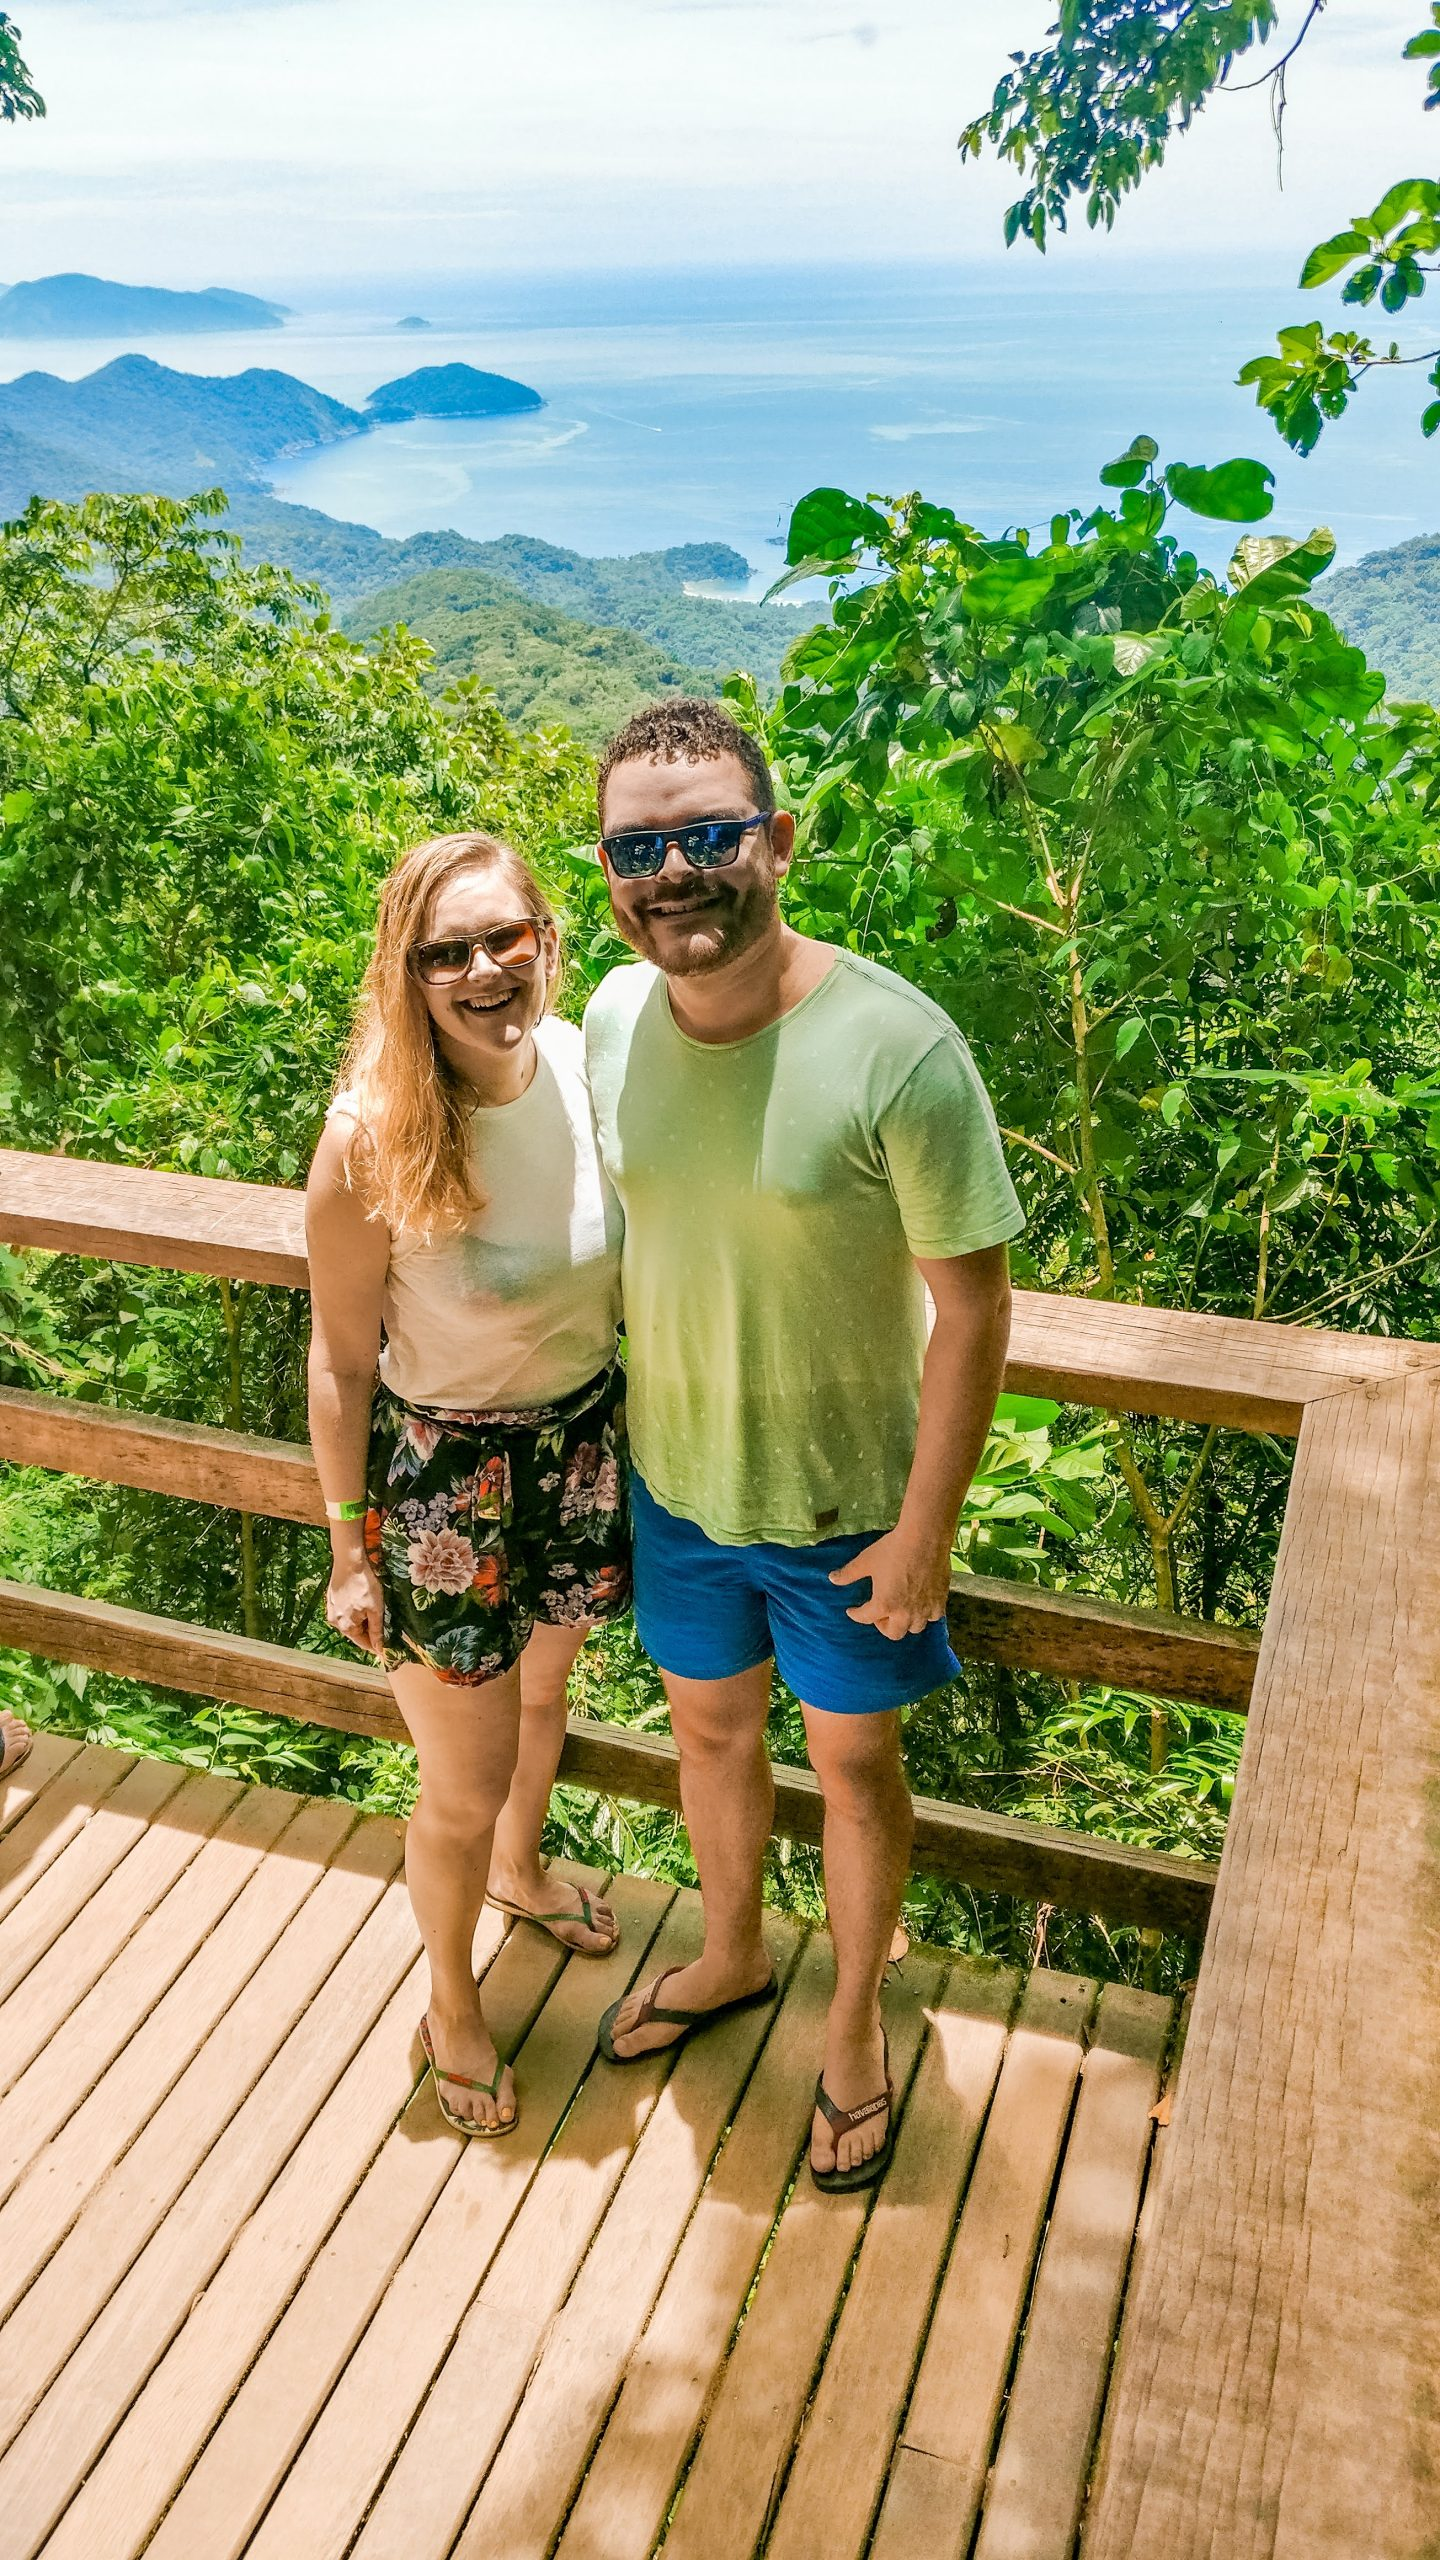 Mirante de Castelhanos, the viewpoint on the way to Praia Castelhanos - How to spend 3 days in Ilhabela, Brazil? | Aliz's Wonderland